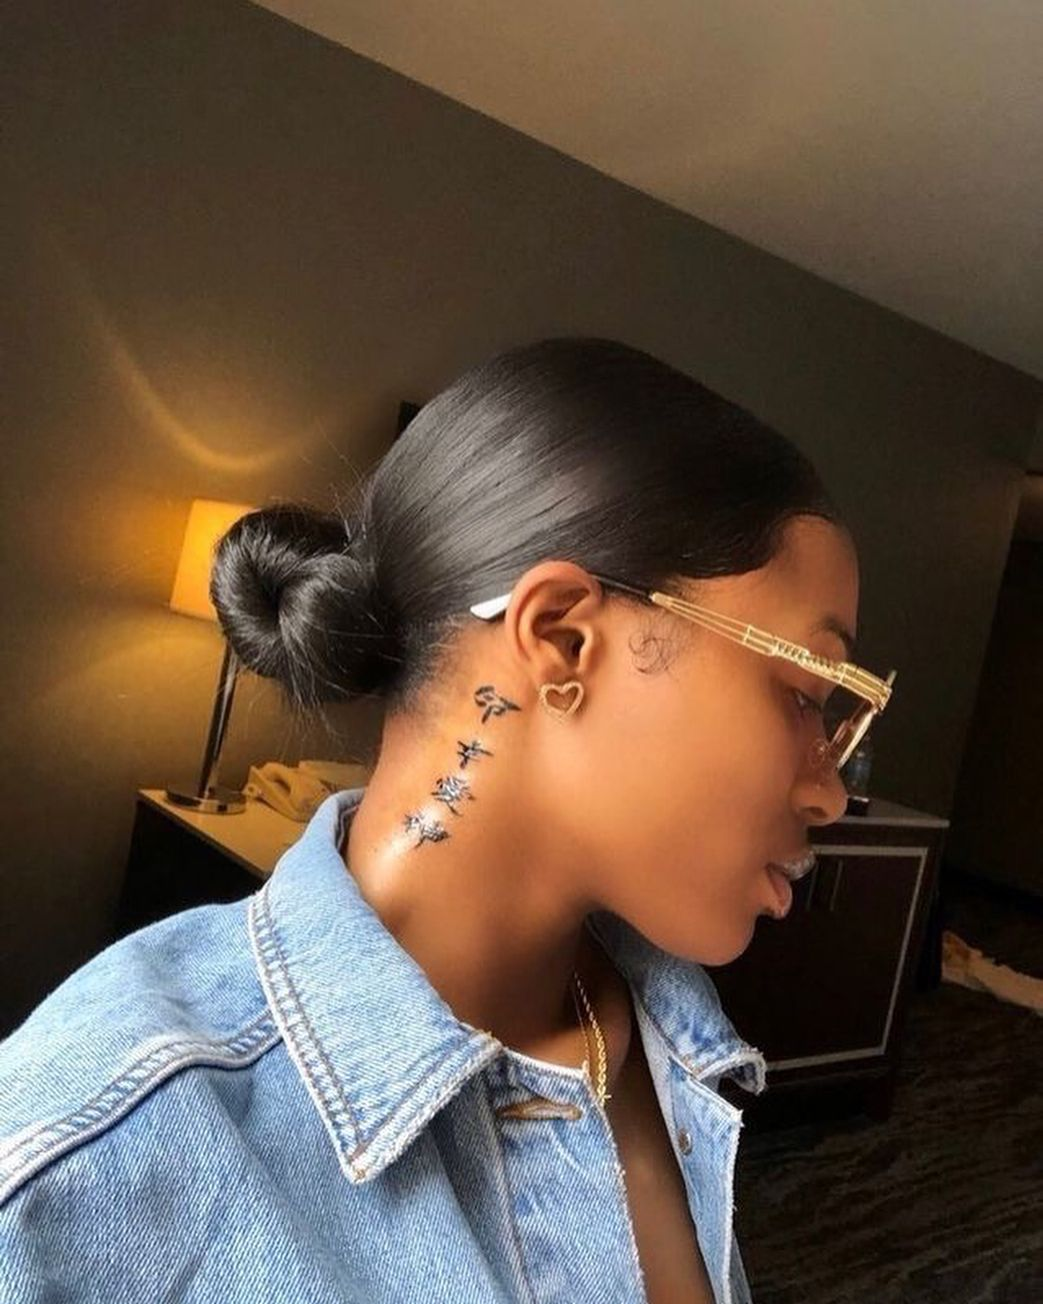 Alexismpins In 2020 With Images Neck Tattoos Women Stylist Tattoos Behind Ear Tattoos